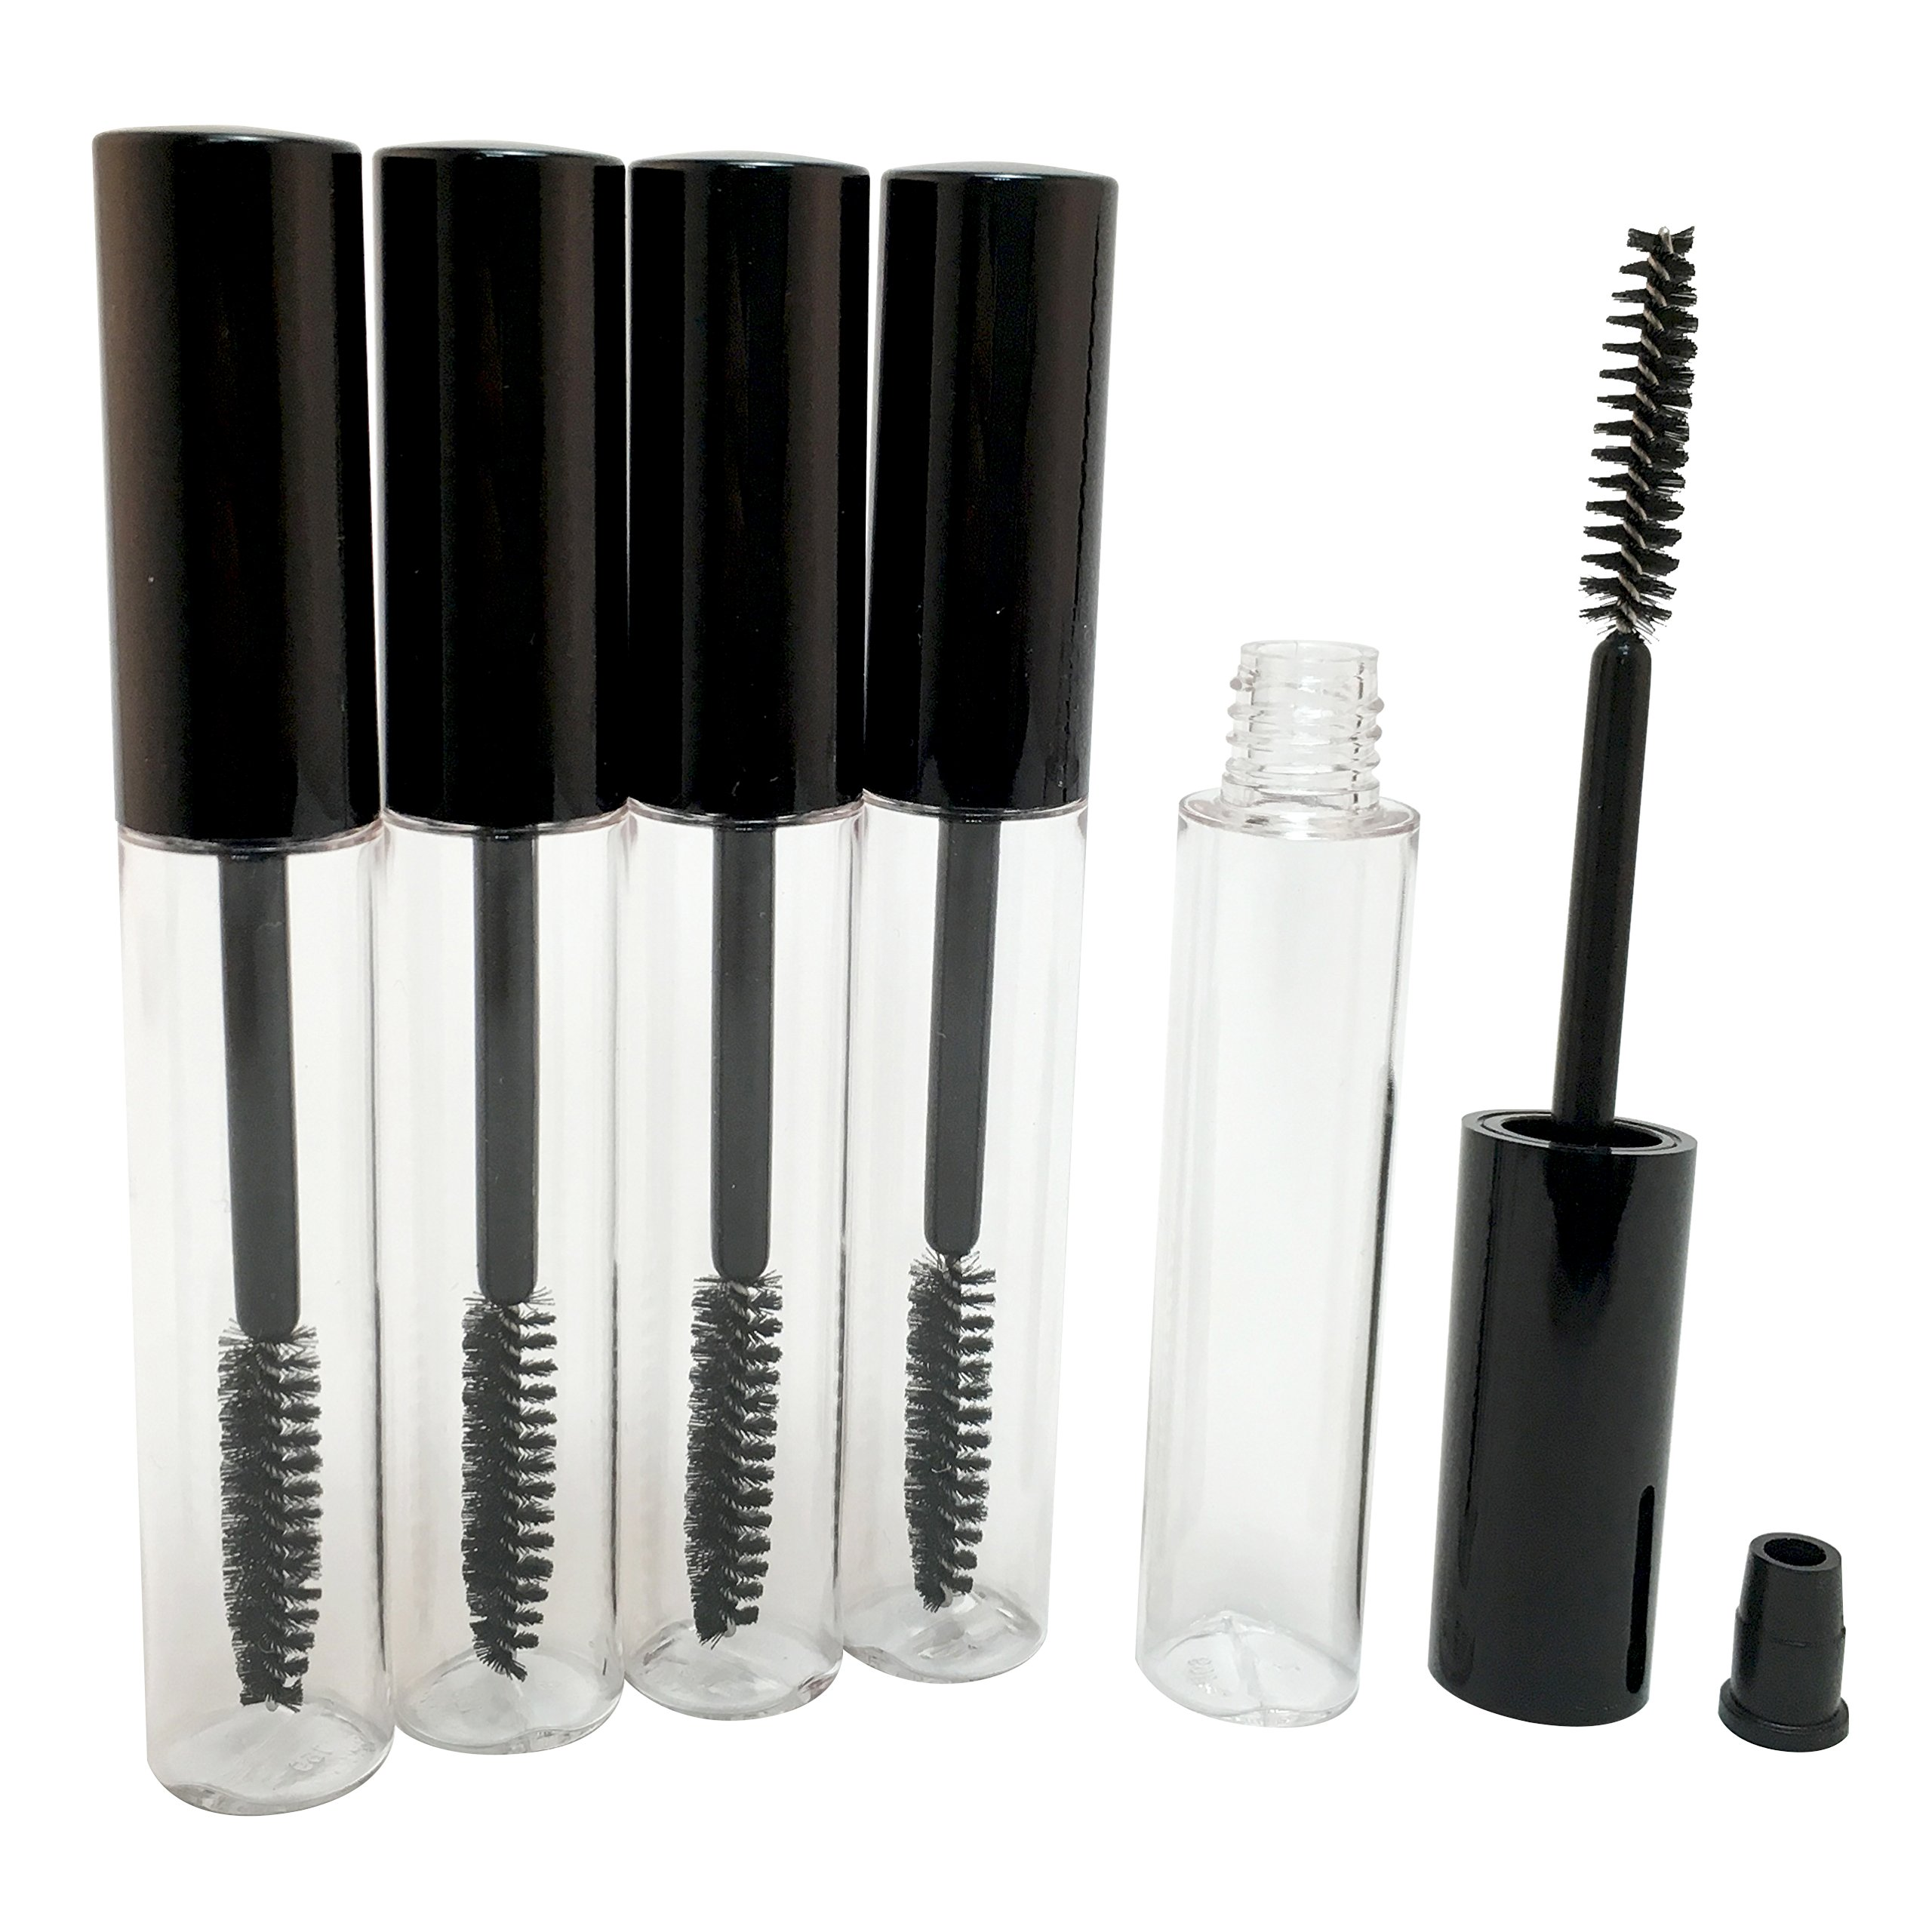 Plastic Fashionable Mascara Bottle 10 ml (Pack of 500) by TOPFASHION89